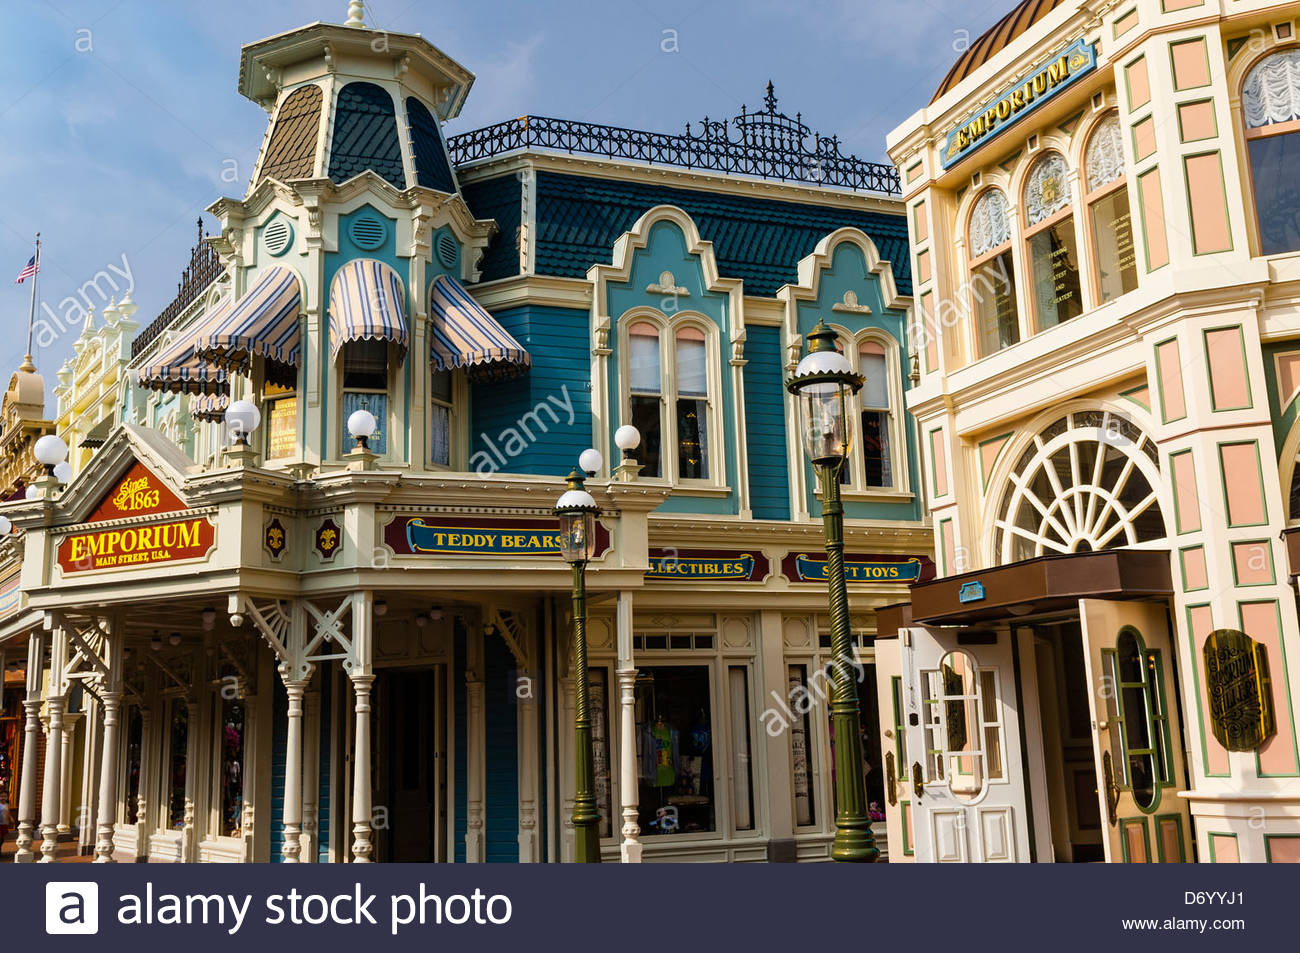 Main Street U.S.A., Magic Kingdom, Walt Disney World, Orlando, Florida USA - Stock Image